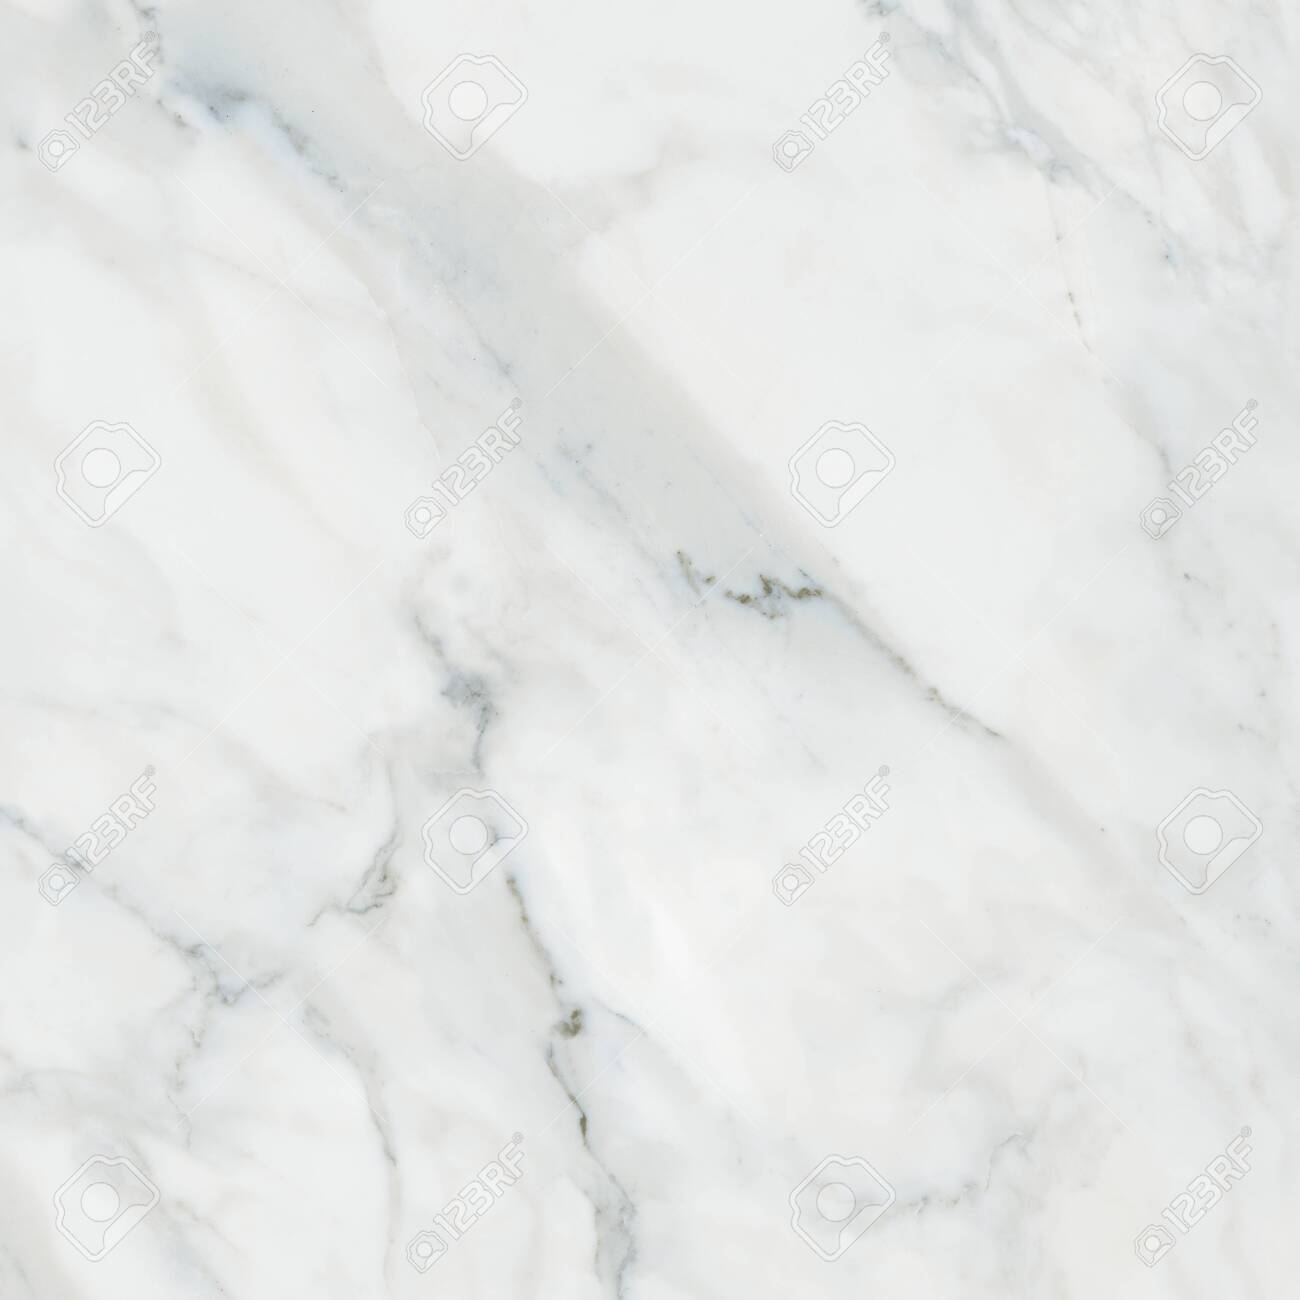 Marble Texture Background With High Resolution Italian Marble Stock Photo Picture And Royalty Free Image Image 153477914